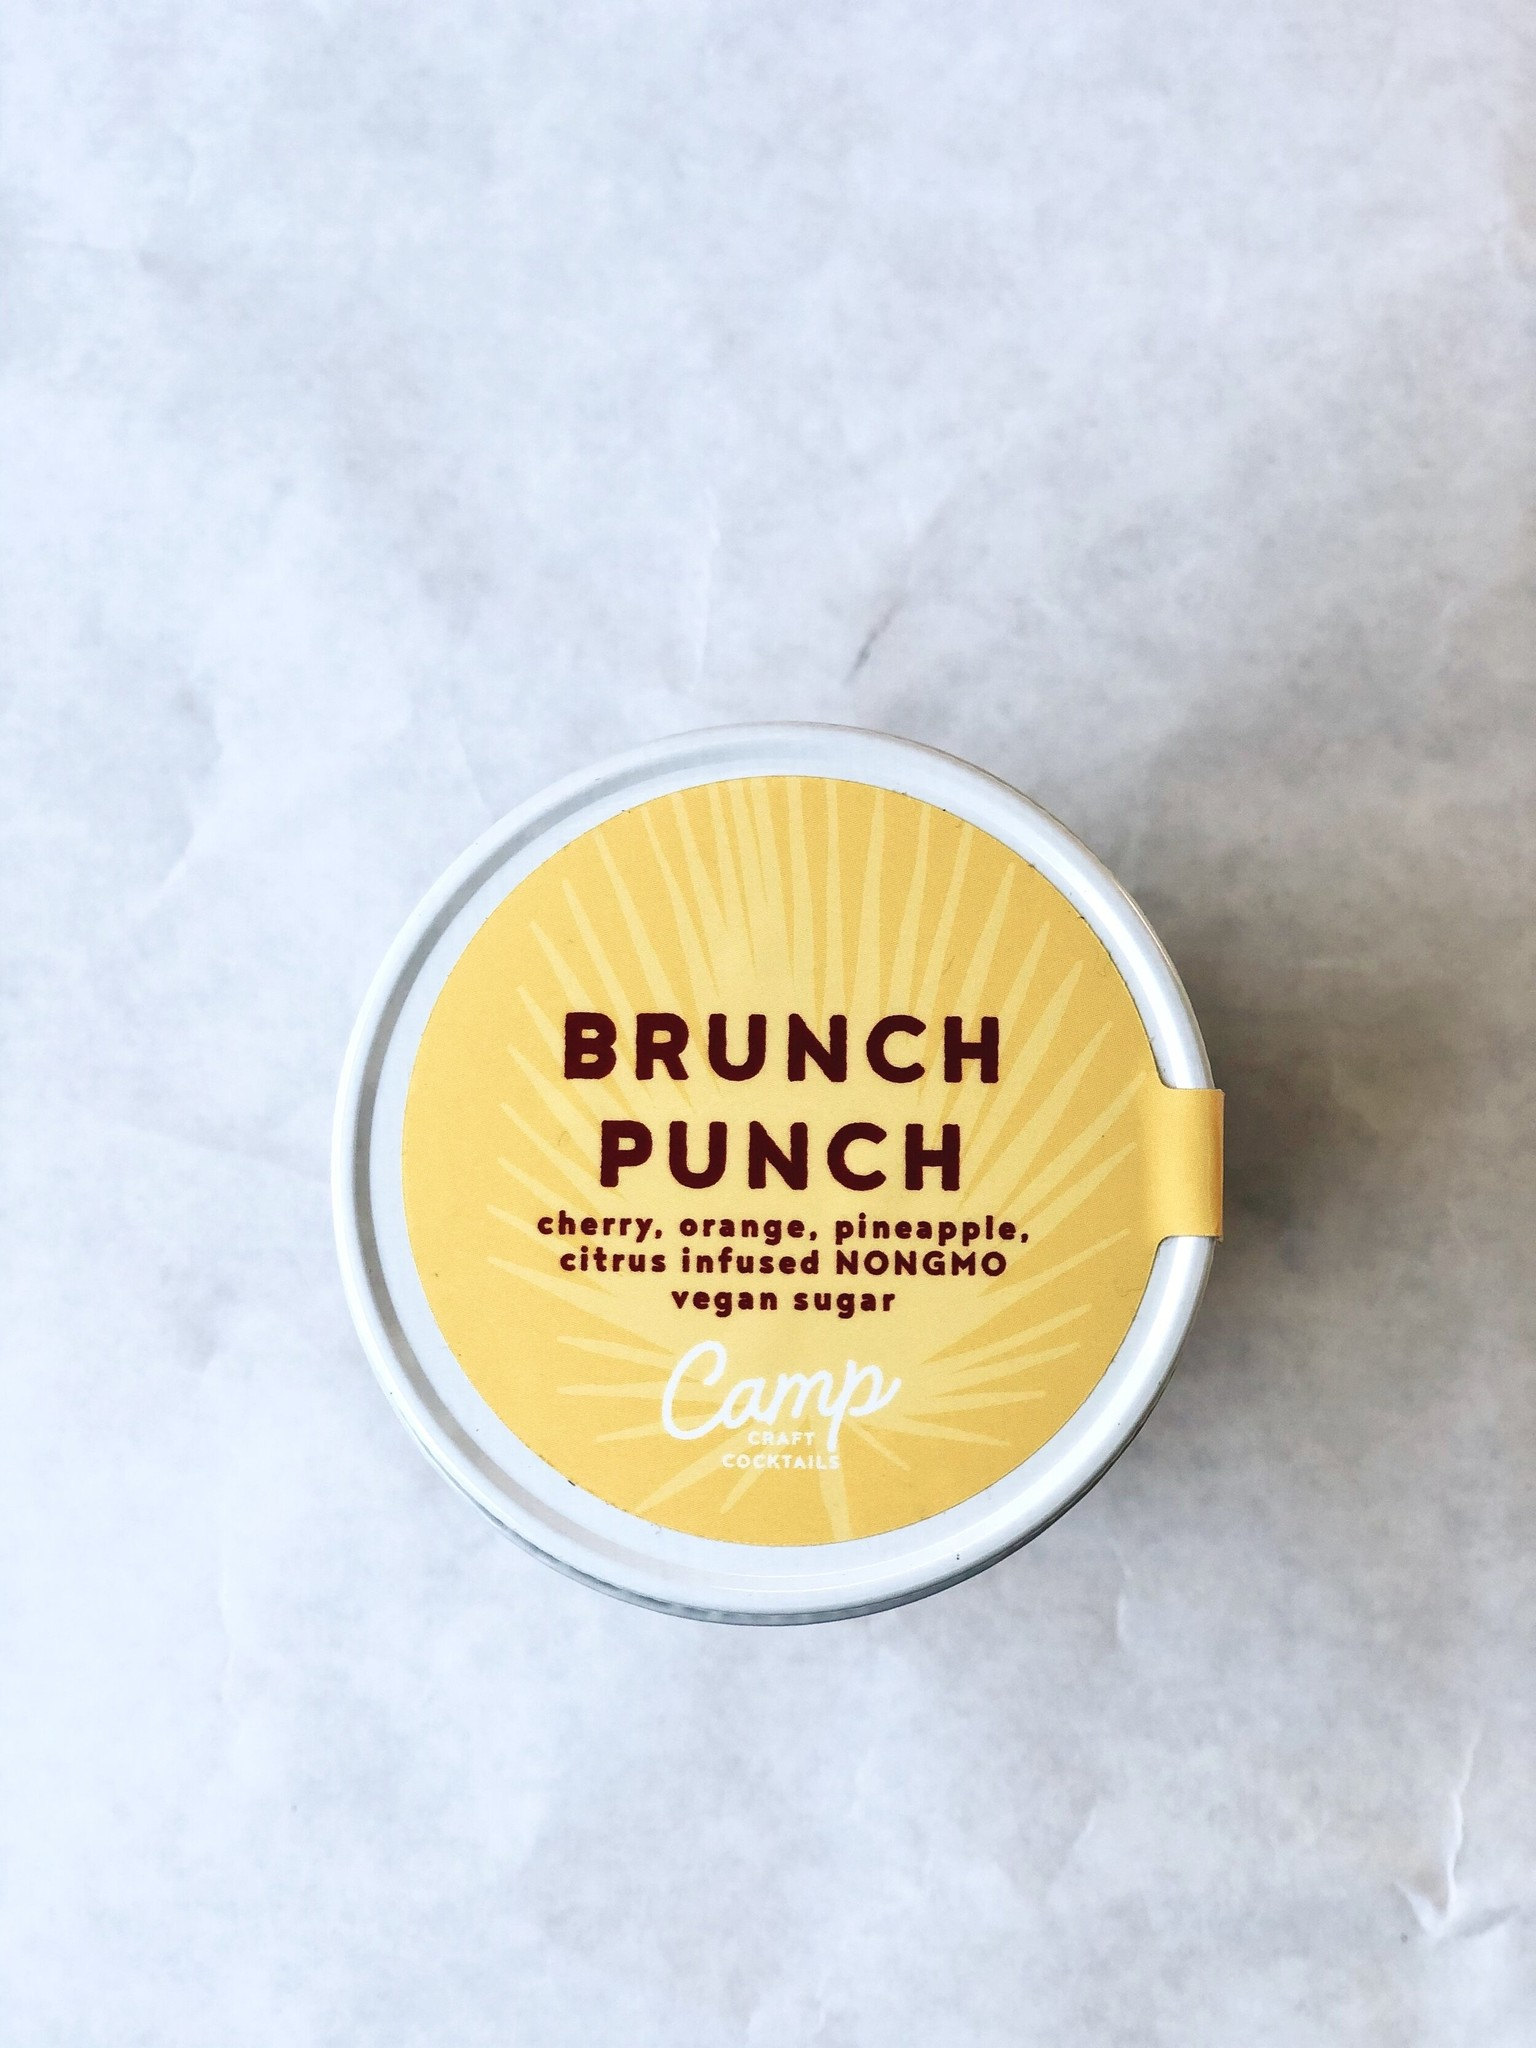 Camp Craft Cocktails Brunch Punch